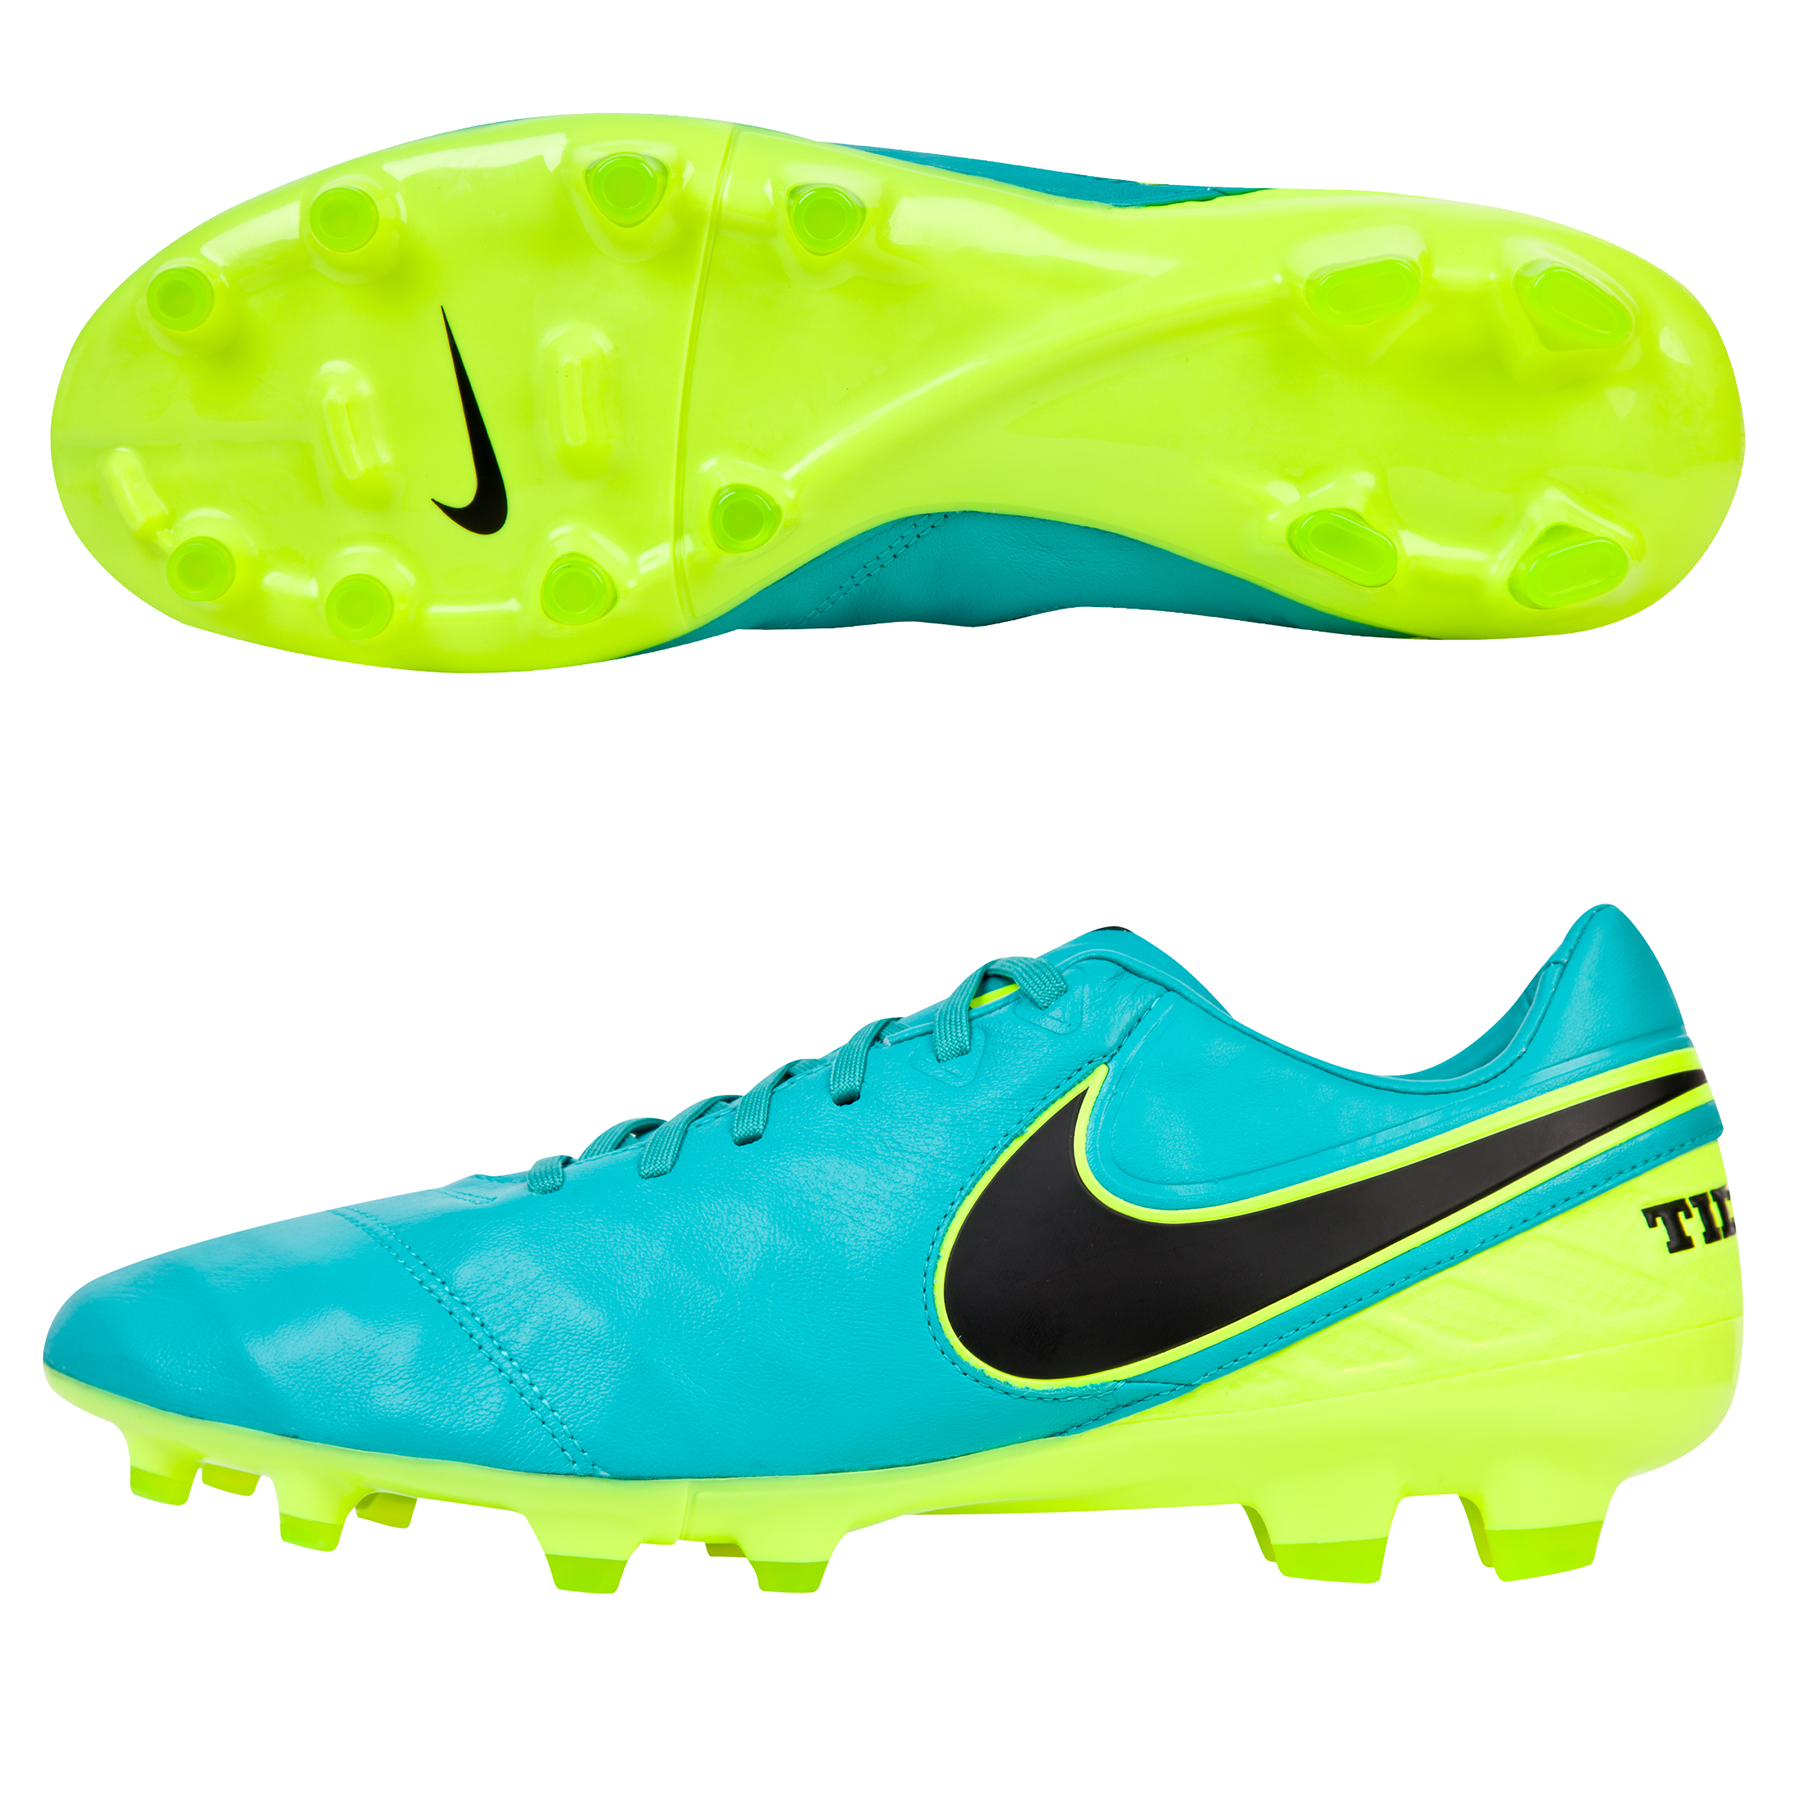 Nike Tiempo Legacy II Firm Ground Football Boots - Clear Jade/Black/Vo